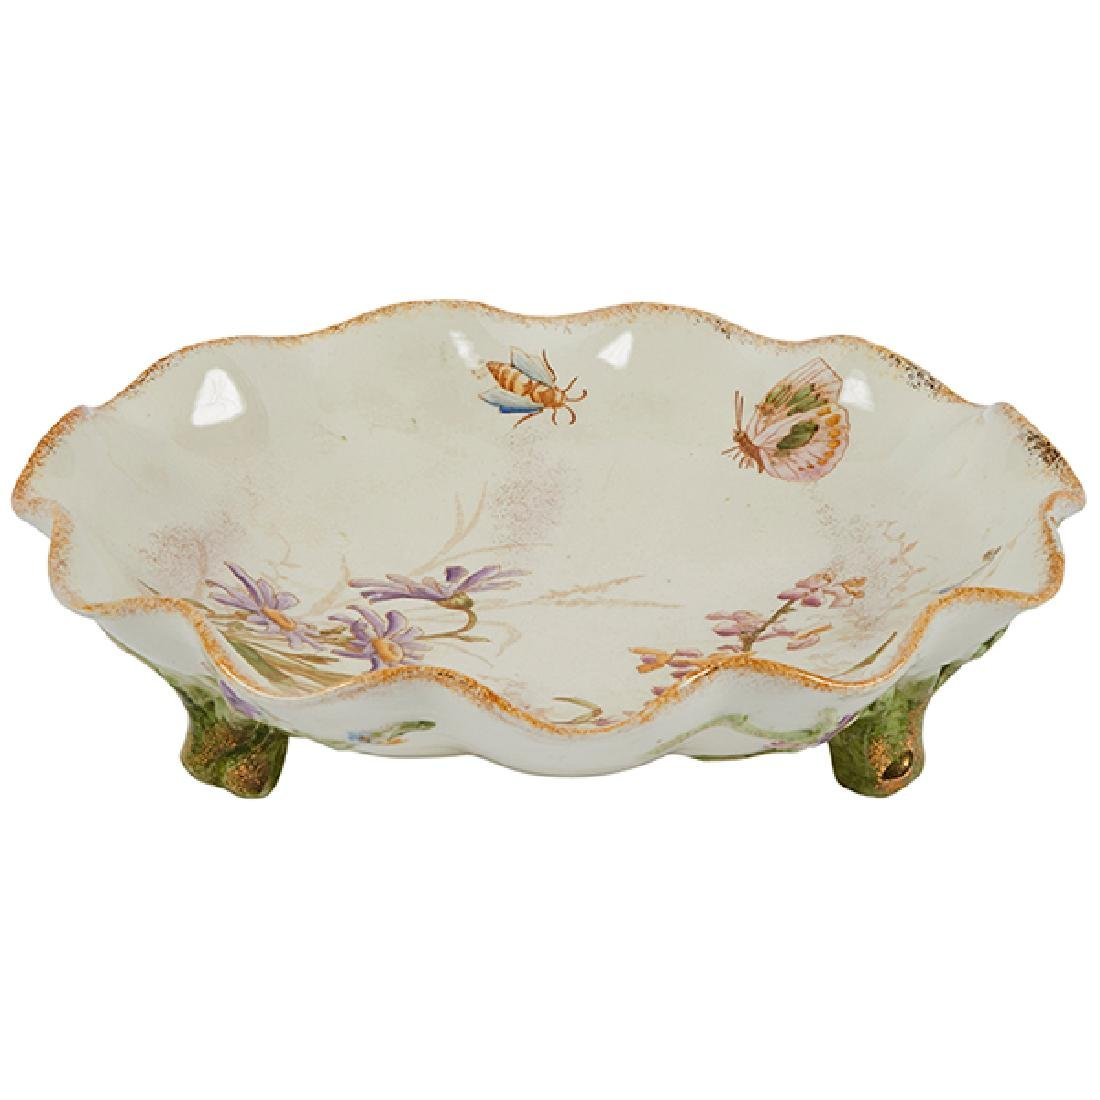 Emile Galle (1846-1904) Insect and Foliate dish, #373